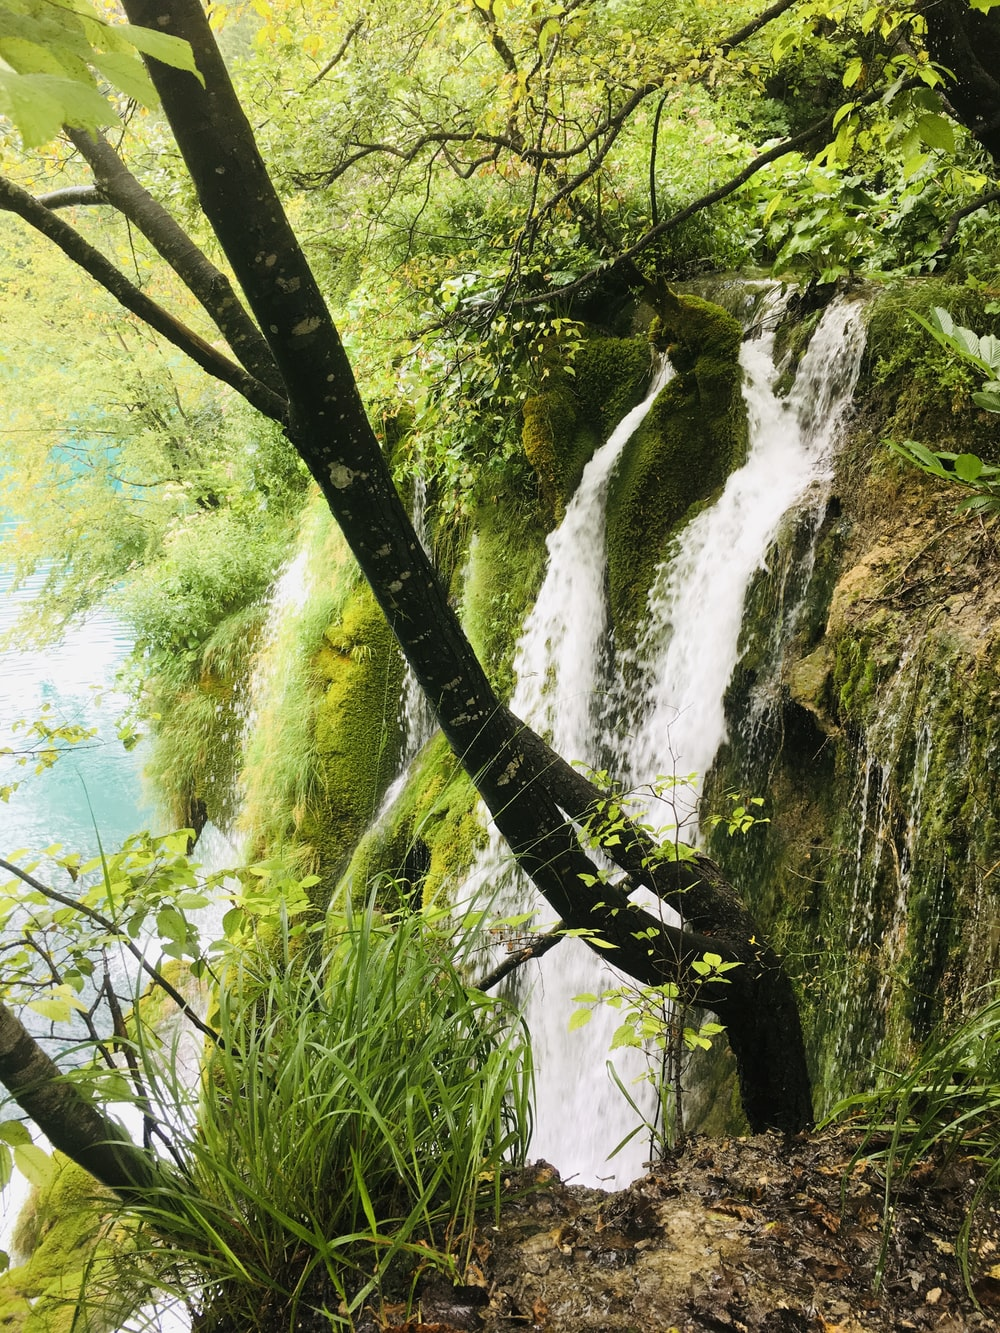 waterfalls surrounded with green trees